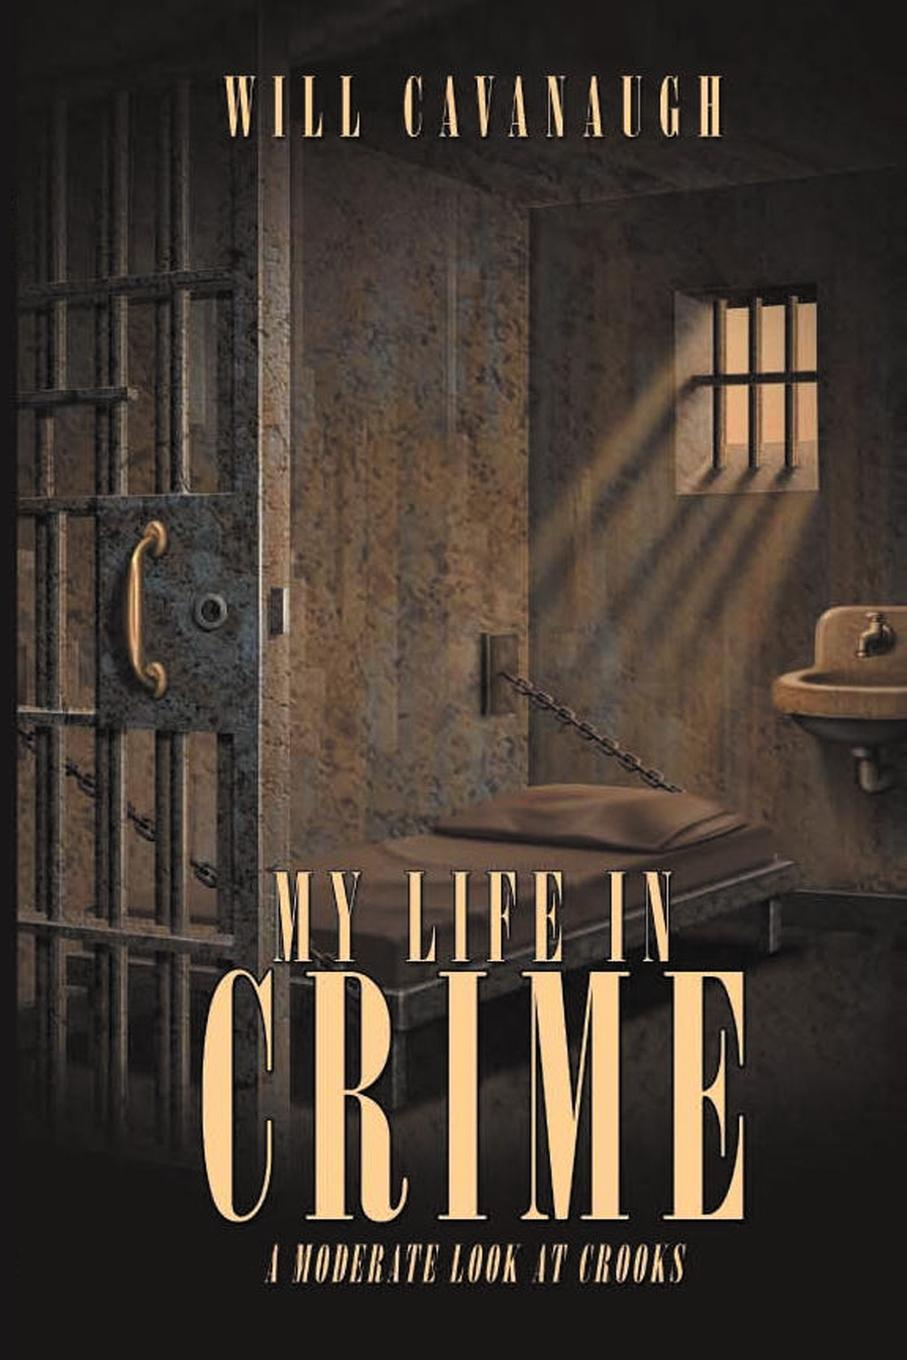 лучшая цена Will Cavanaugh My Life in Crime. A Moderate Look at Crooks